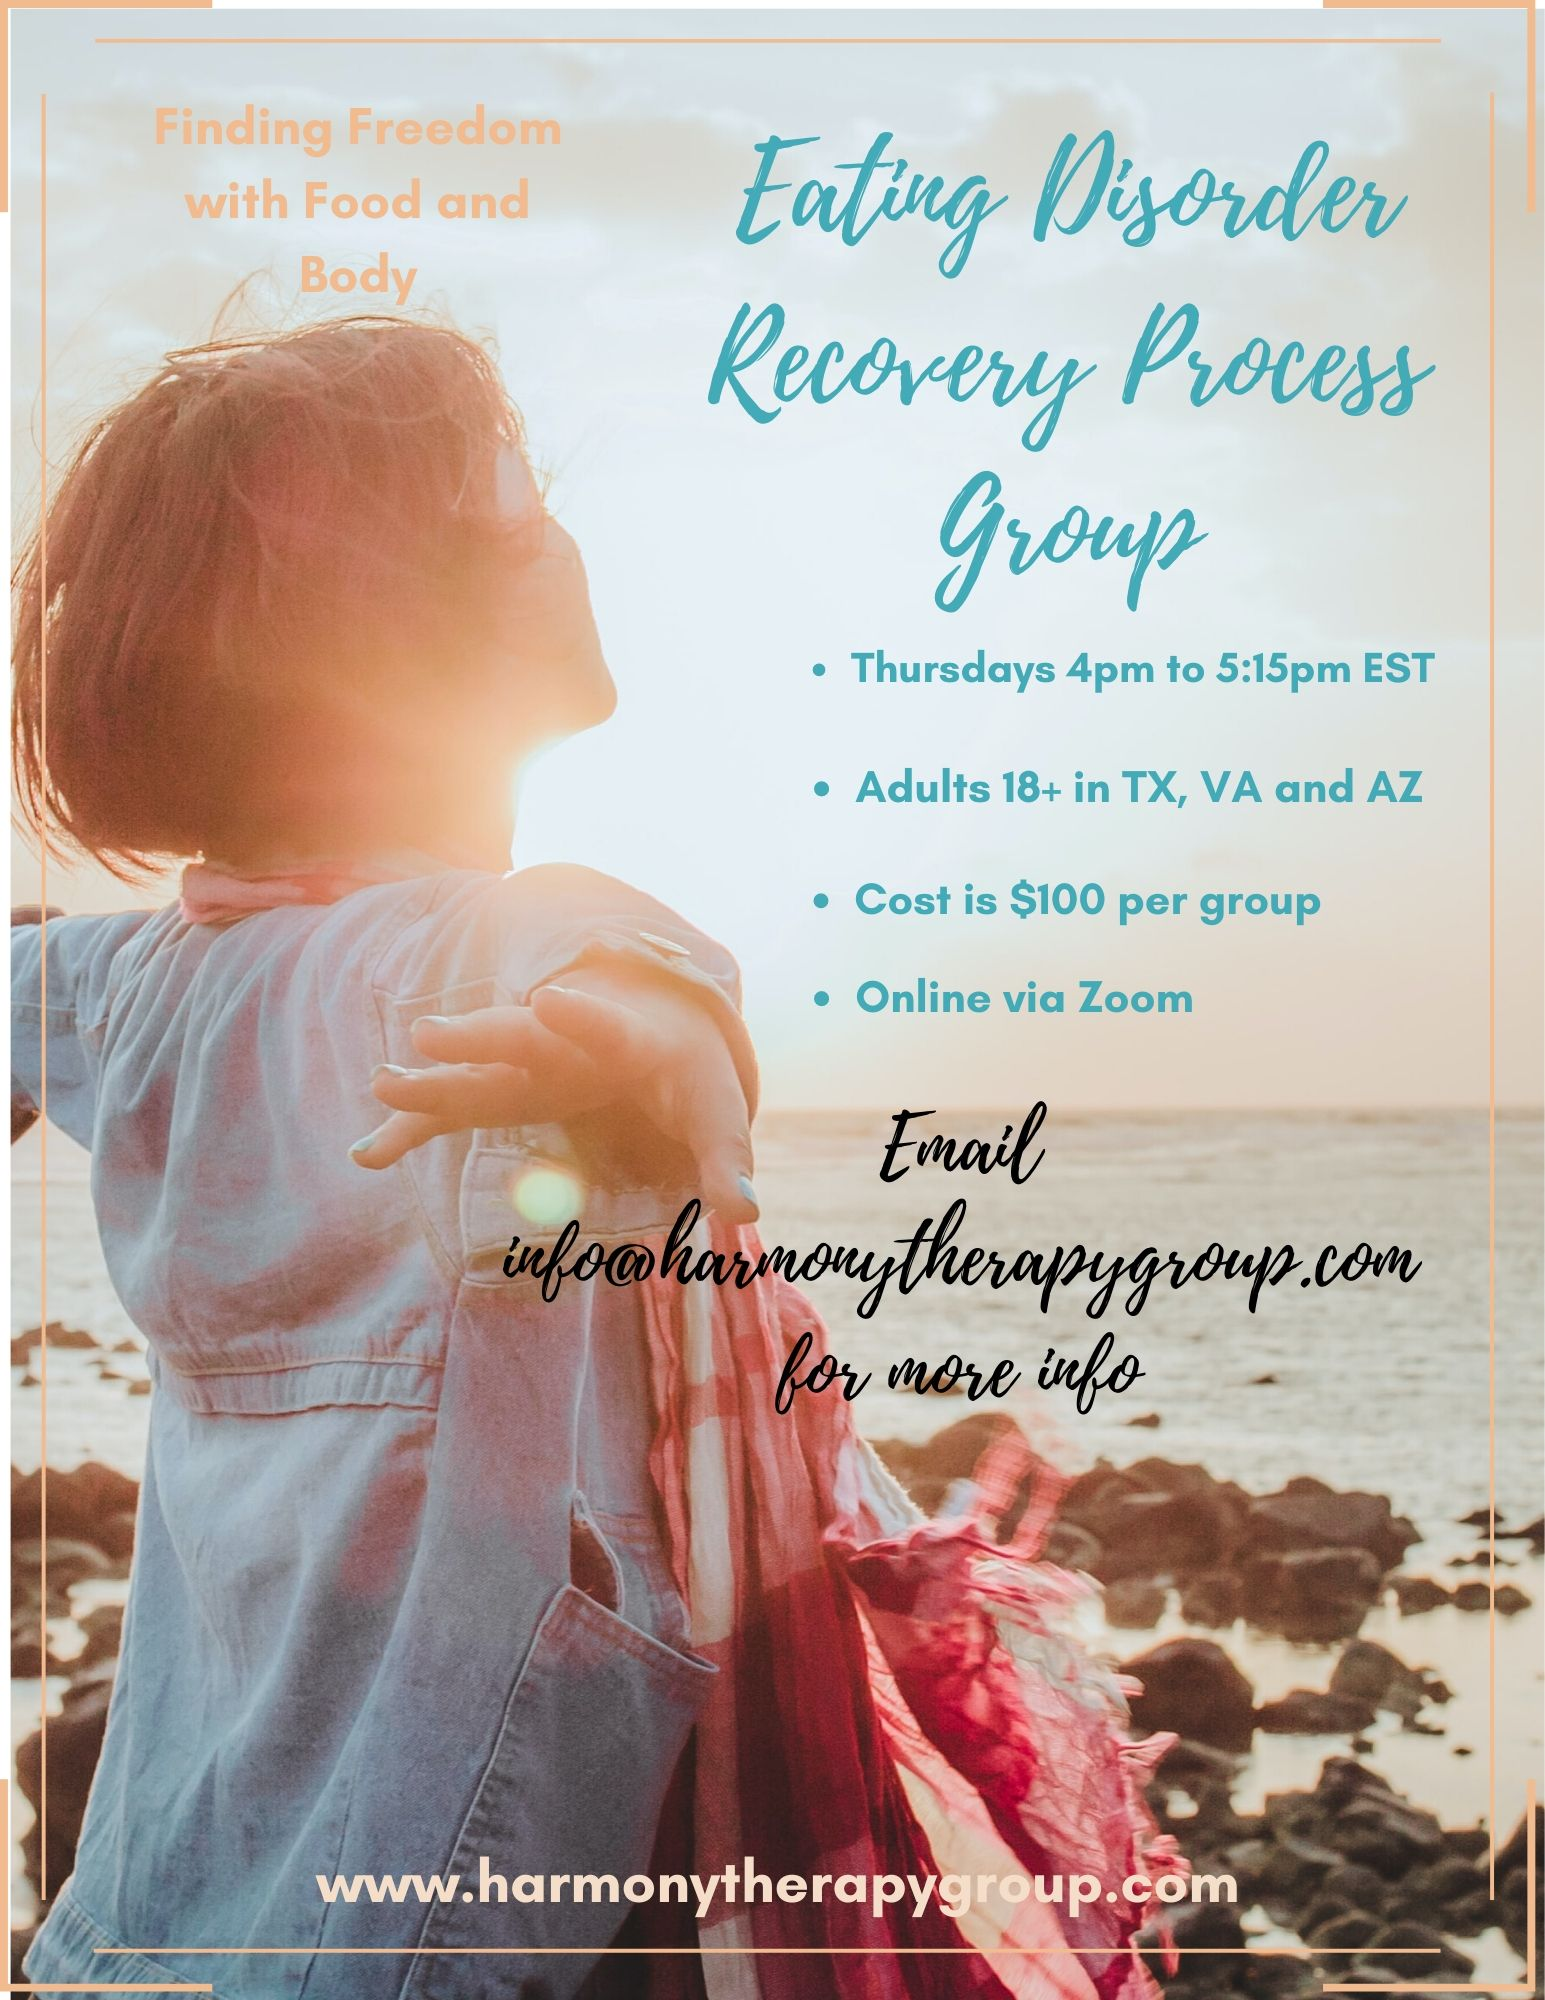 Eating Disorder Recovery Process Group